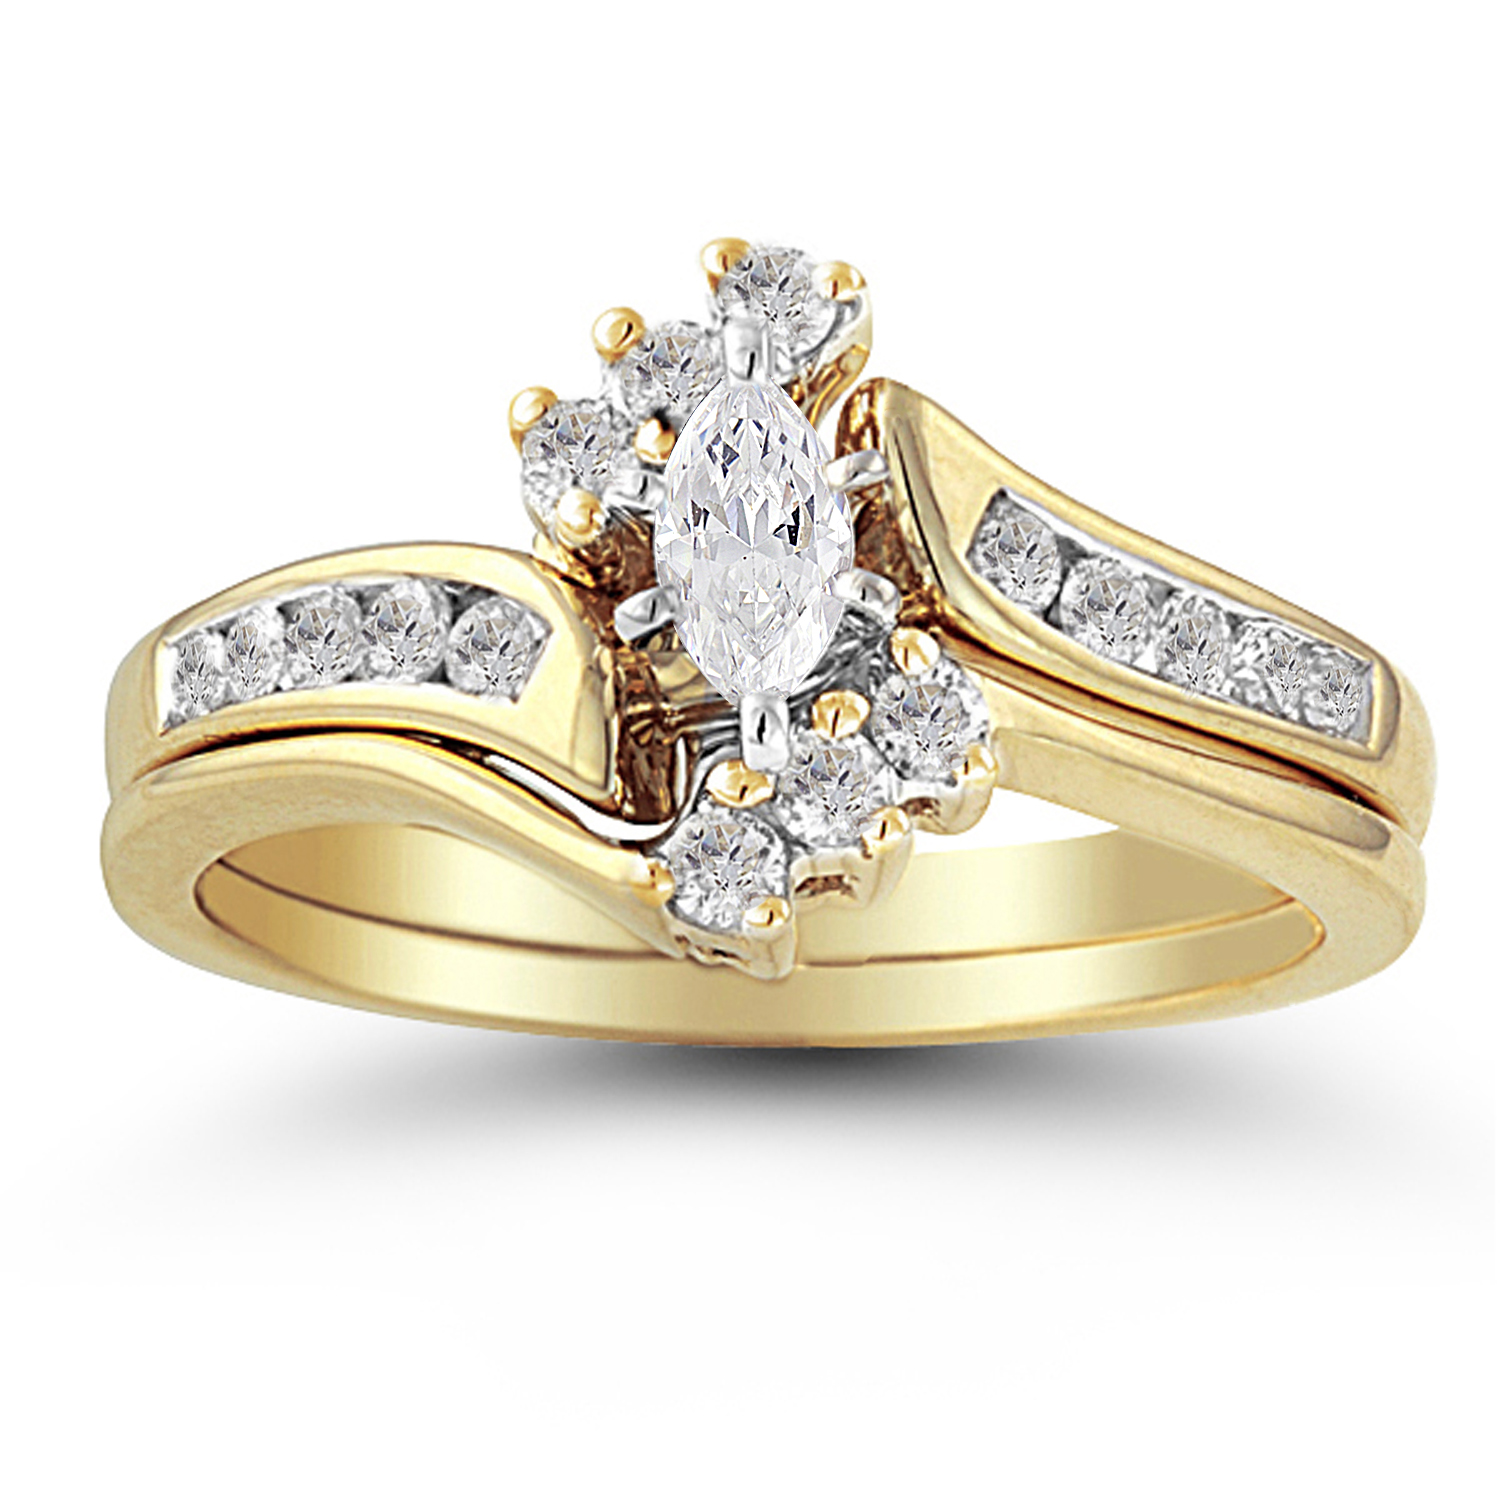 ip halo wedding white rings set gold cushion diamond com engagement walmart trio ring